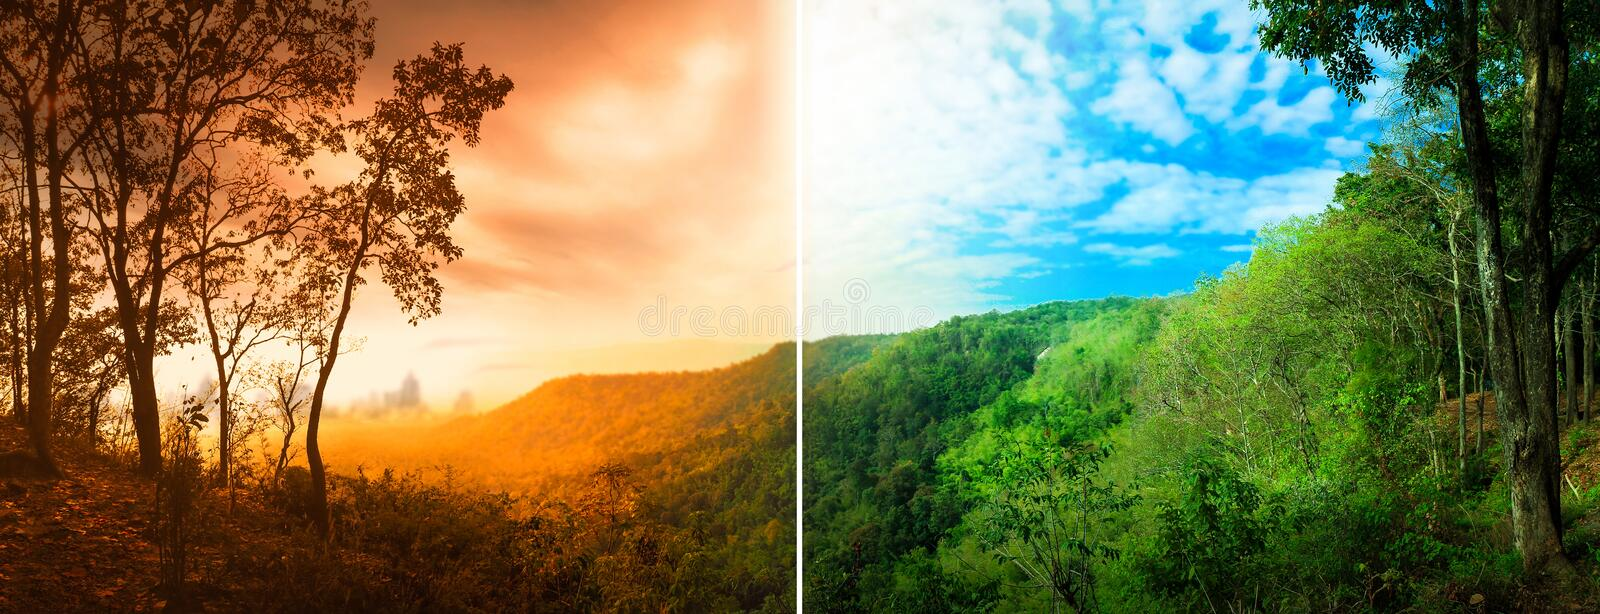 Global warming caused by greenhouse gases from bad pollution industrial plants. Climate change affects the nature and temperature. Of the world. The difference royalty free stock image